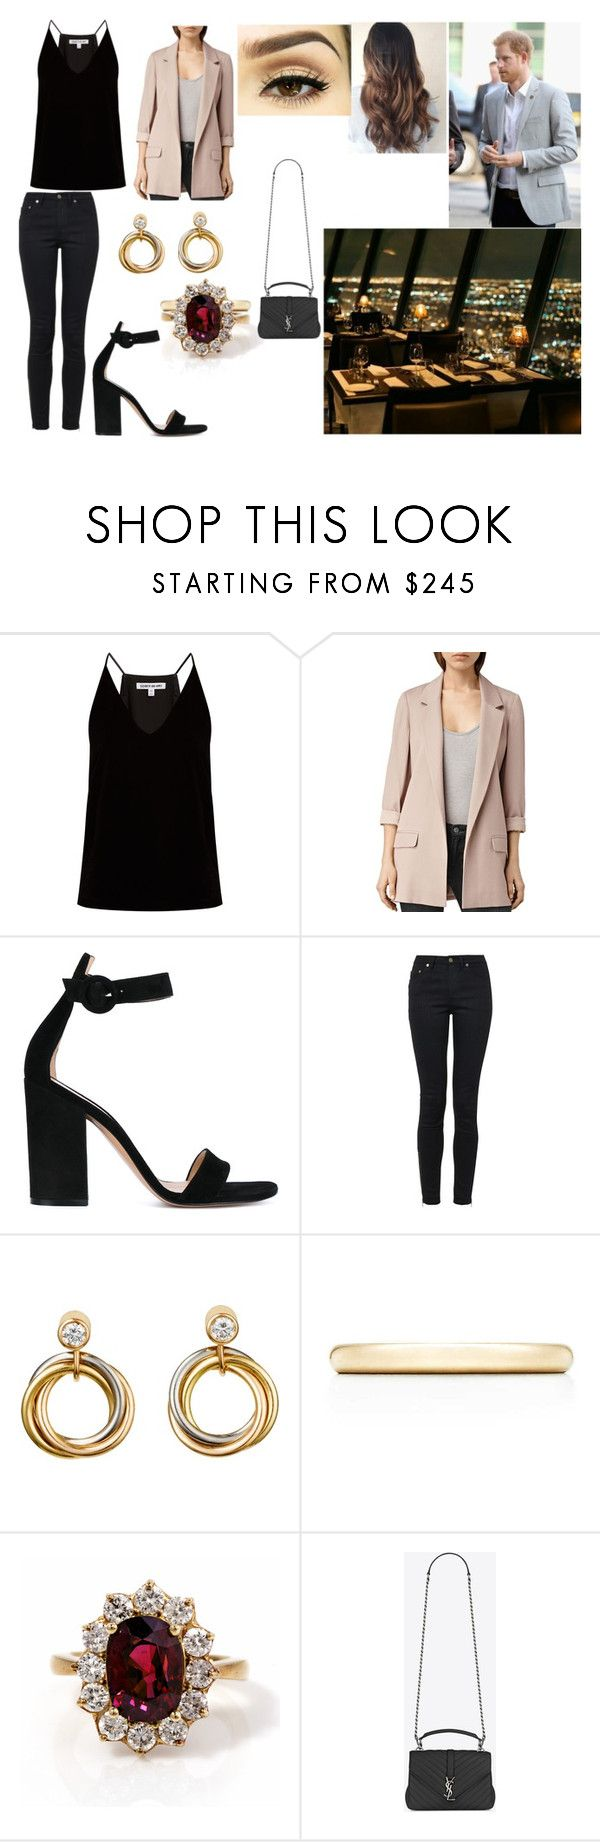 """Having Dinner at the CN tower Before leaving Canada"" by stylesroyals ❤ liked on Polyvore featuring Elizabeth and James, AllSaints, Gianvito Rossi, Yves Saint Laurent, Cartier, Tiffany & Co. and AGL"